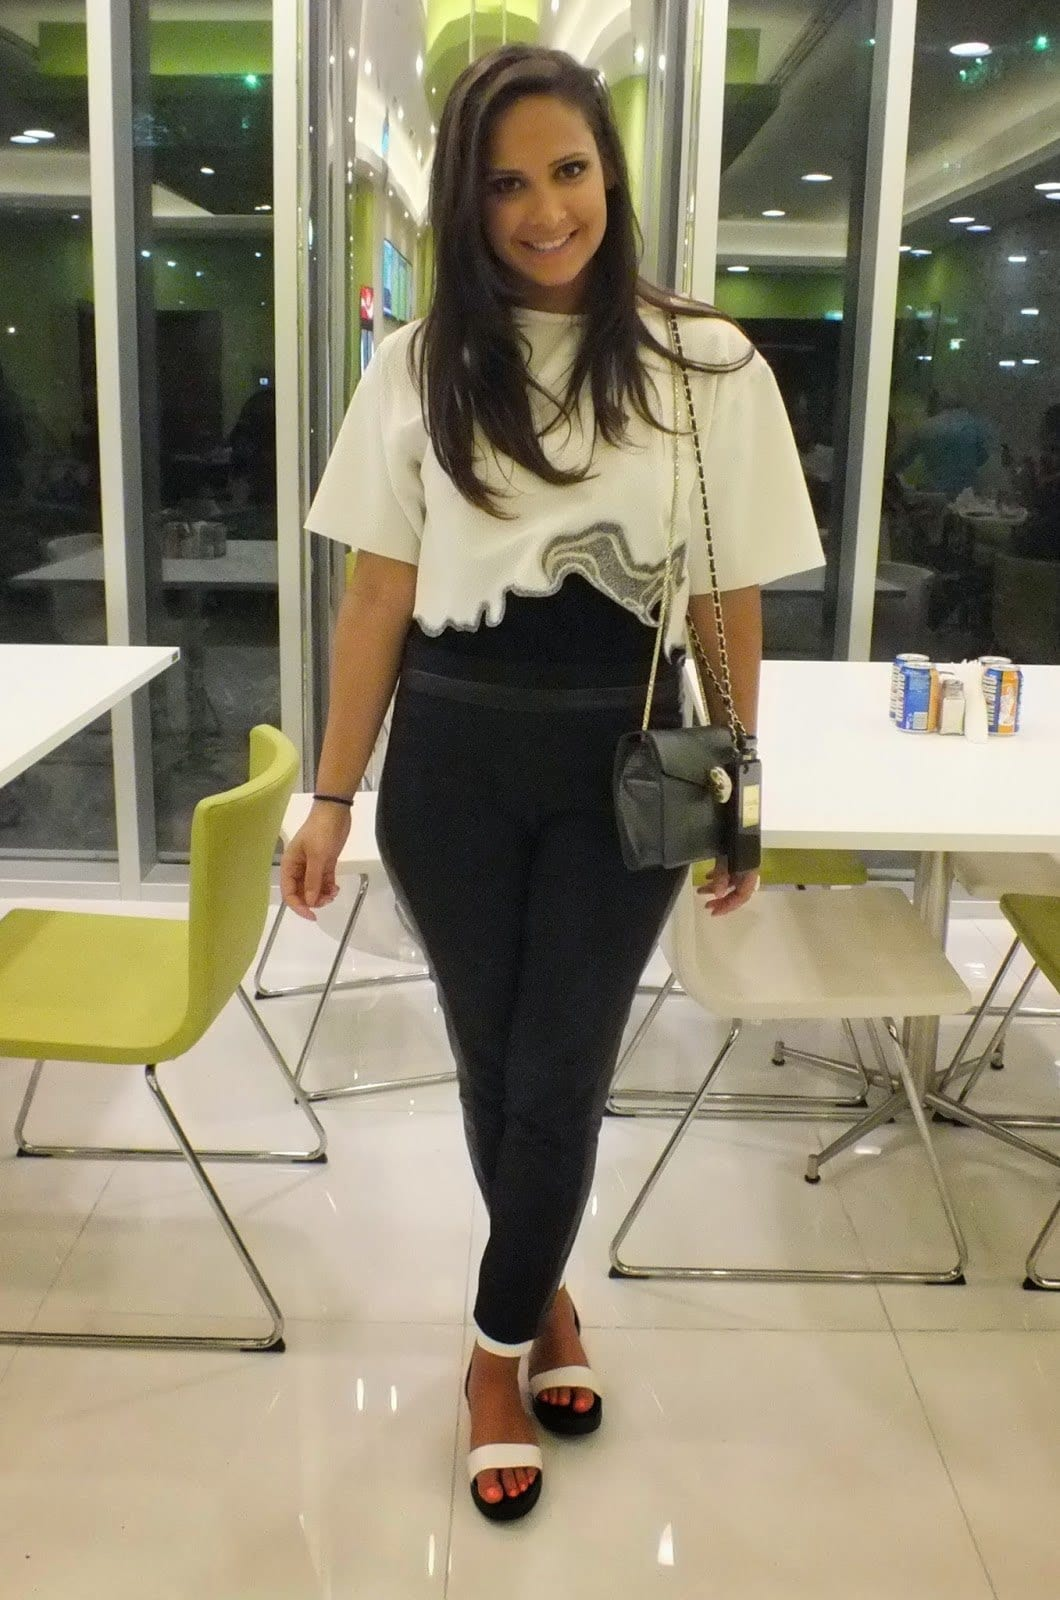 Arab women casual outfits